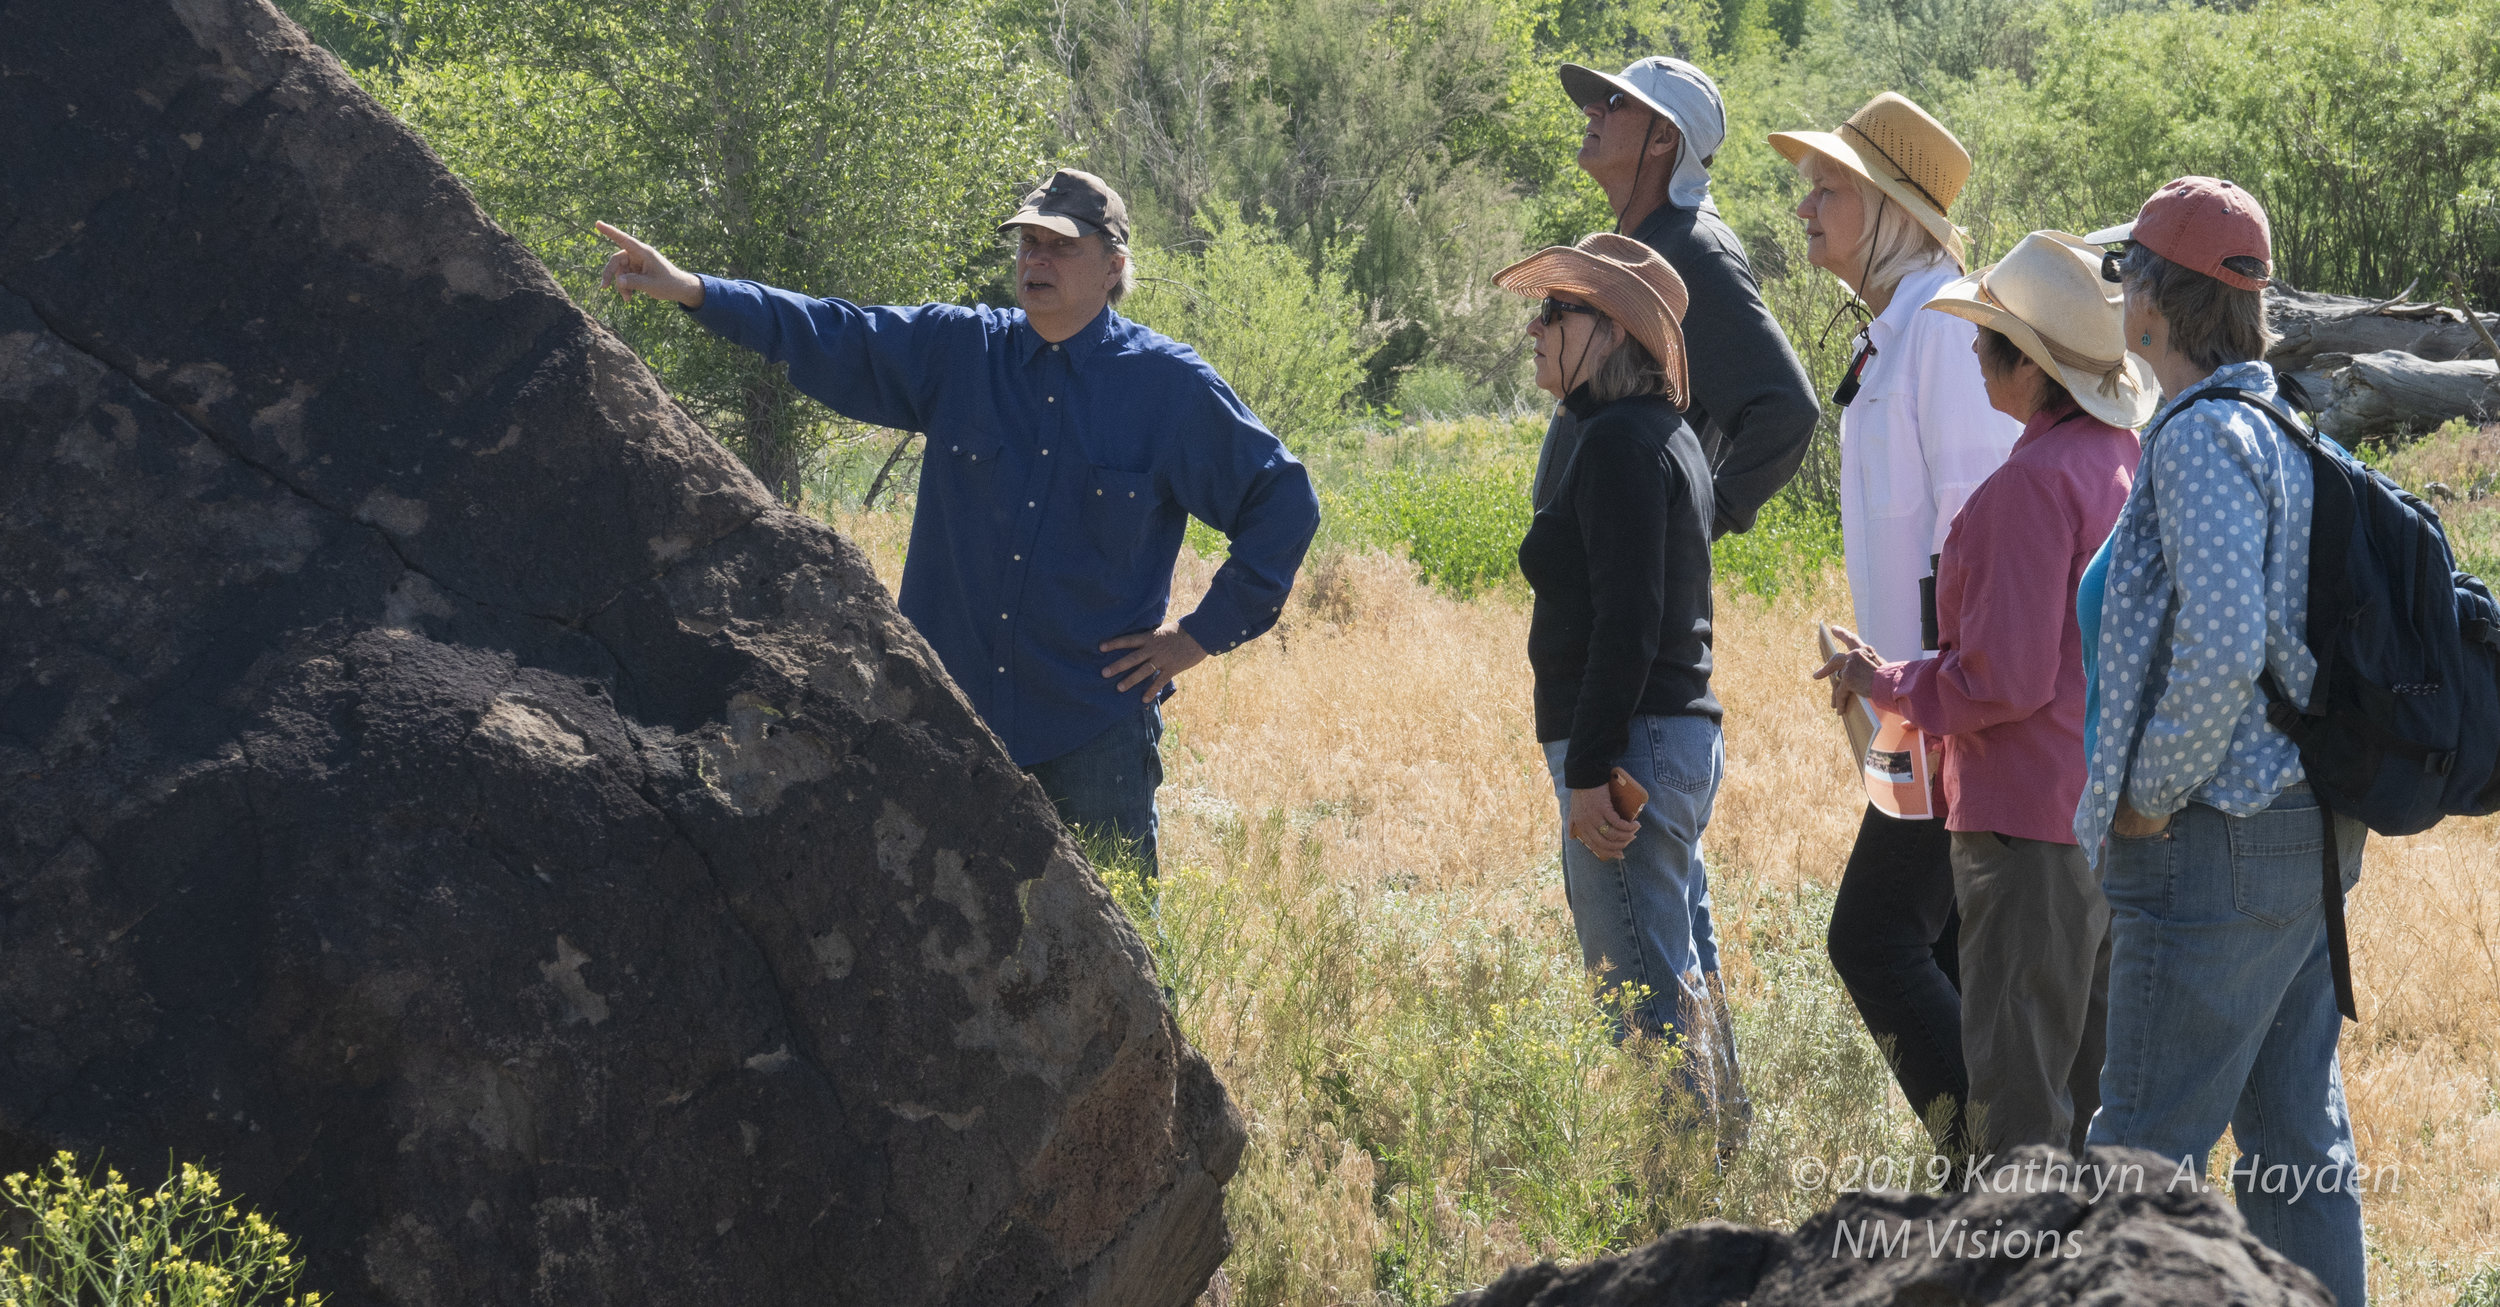 the group listens as Robert points out more petroglyphs and some of the theories about their origins and meanings.